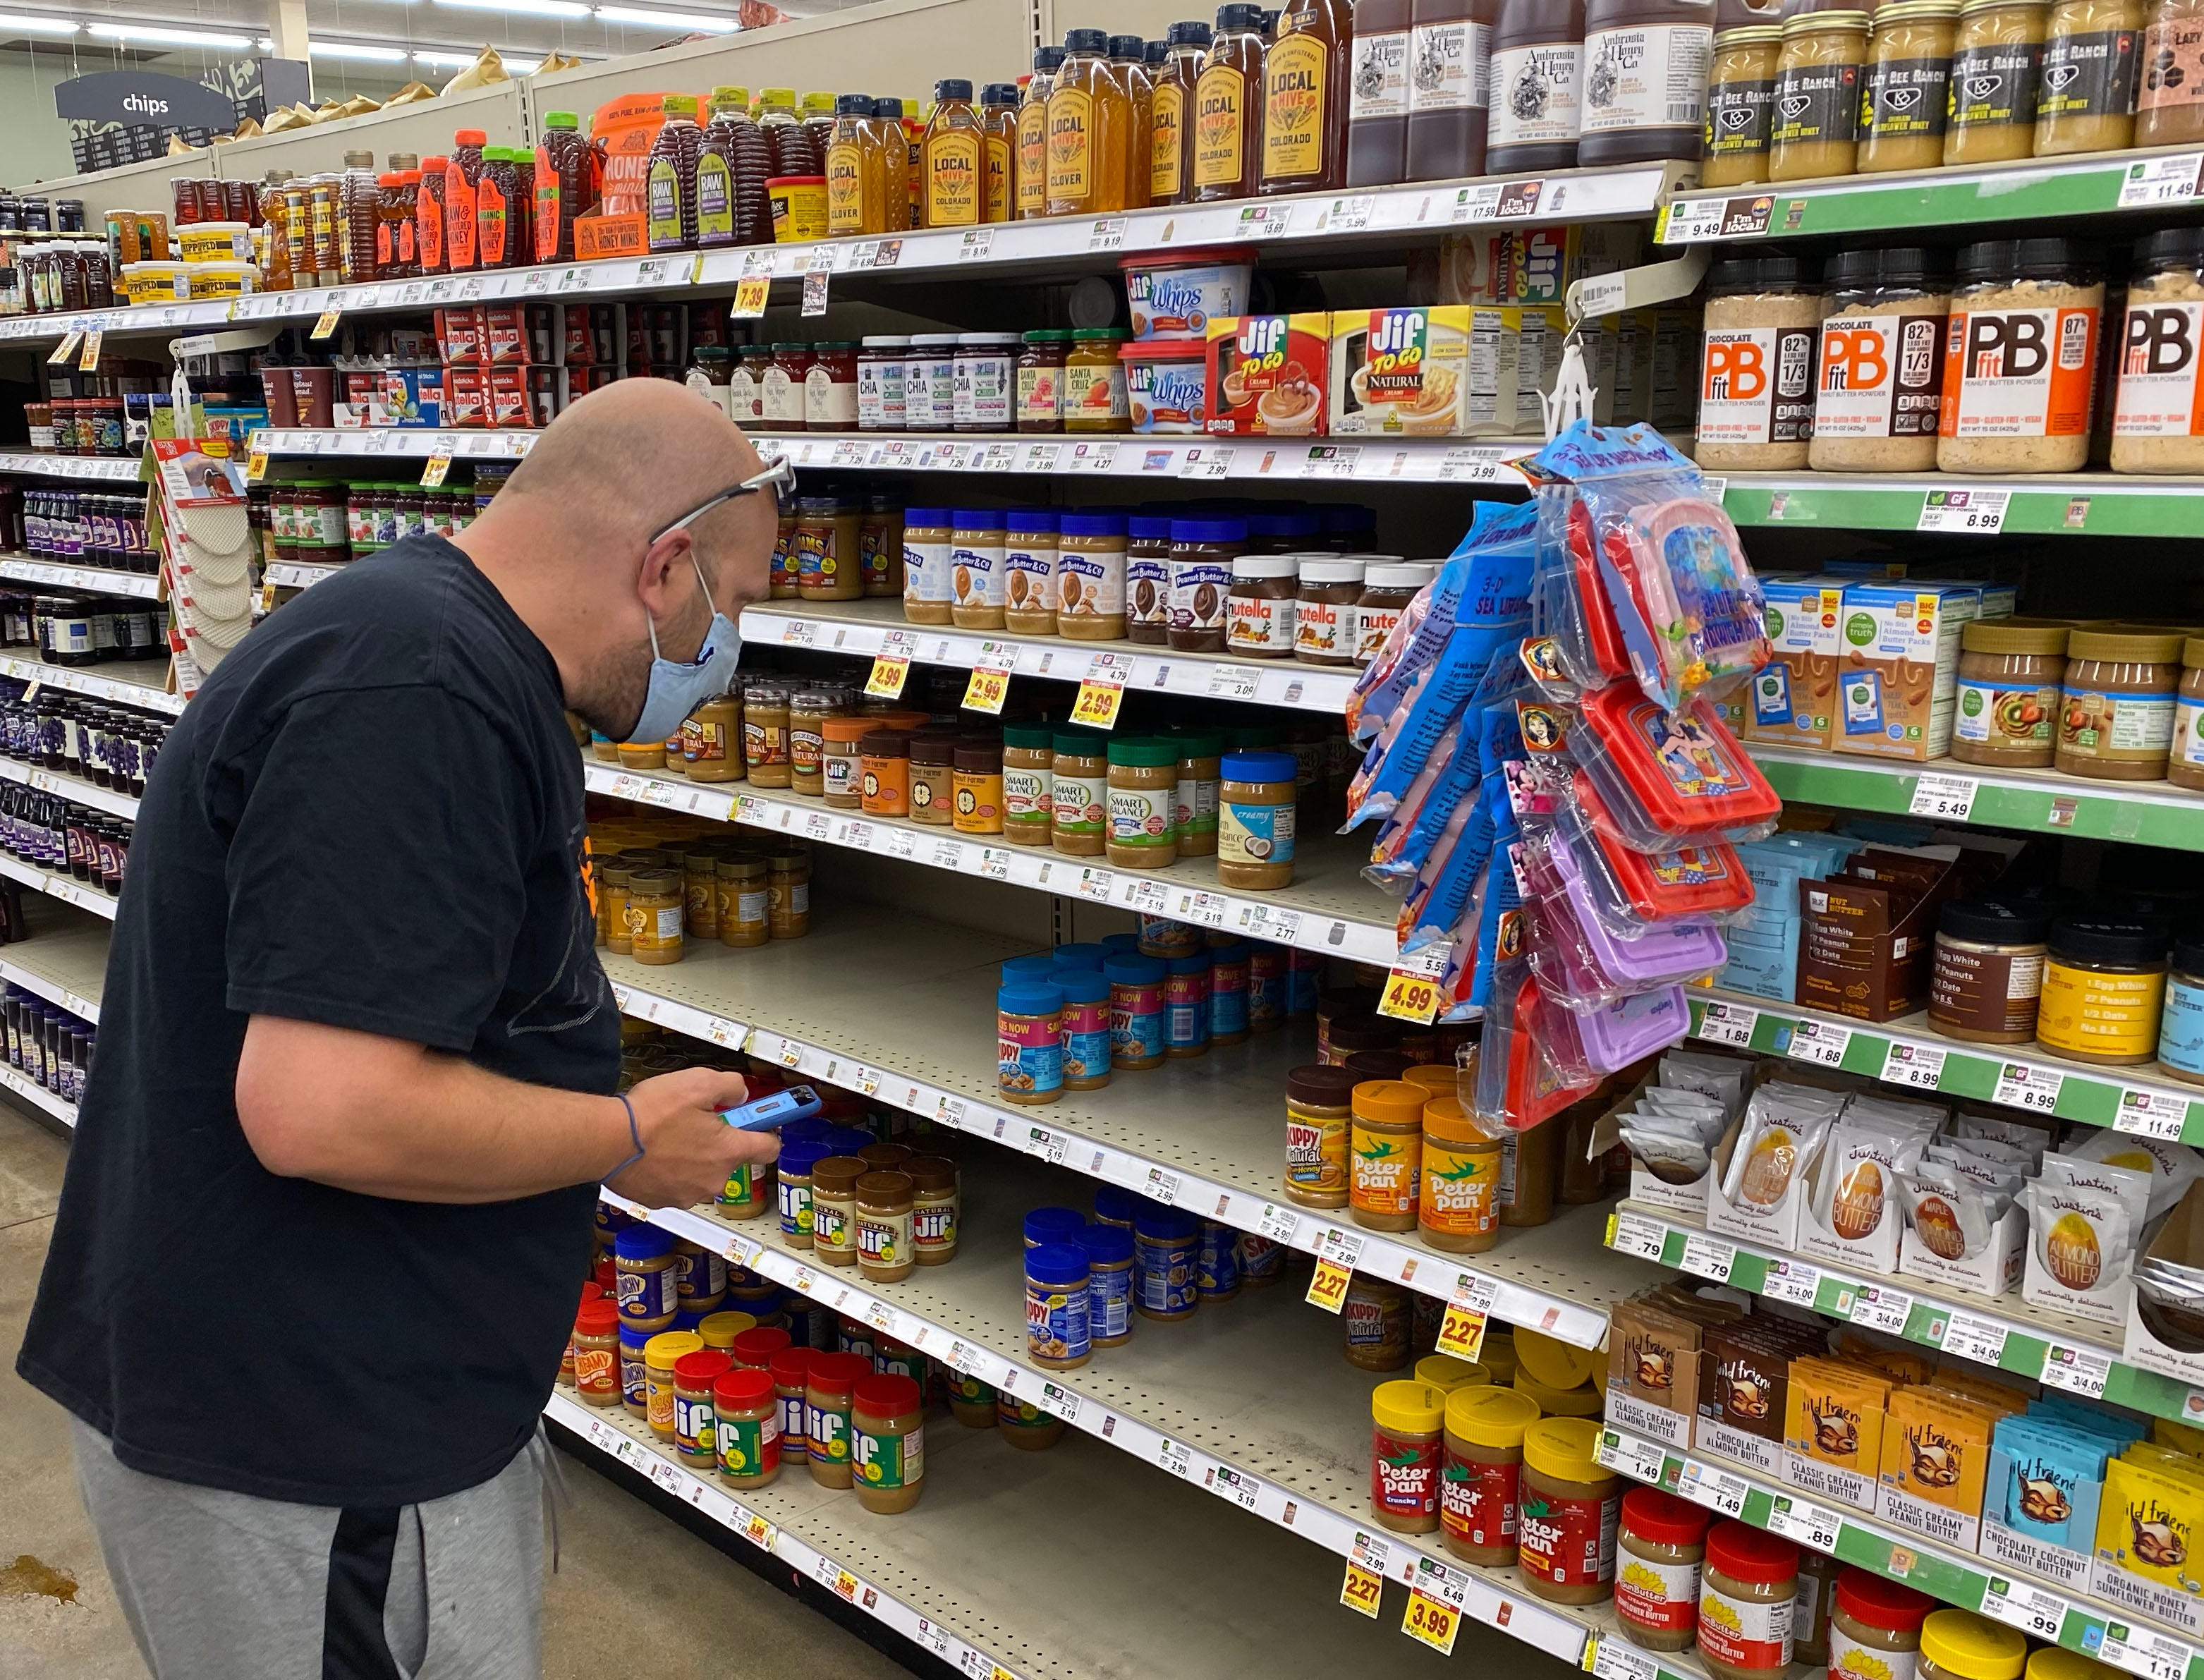 Instacart shopper Jeff Mitchell scans the shelves for the correct kind of peanut butter ordered by a customer inside a grocery store in Boulder County, Colorado.